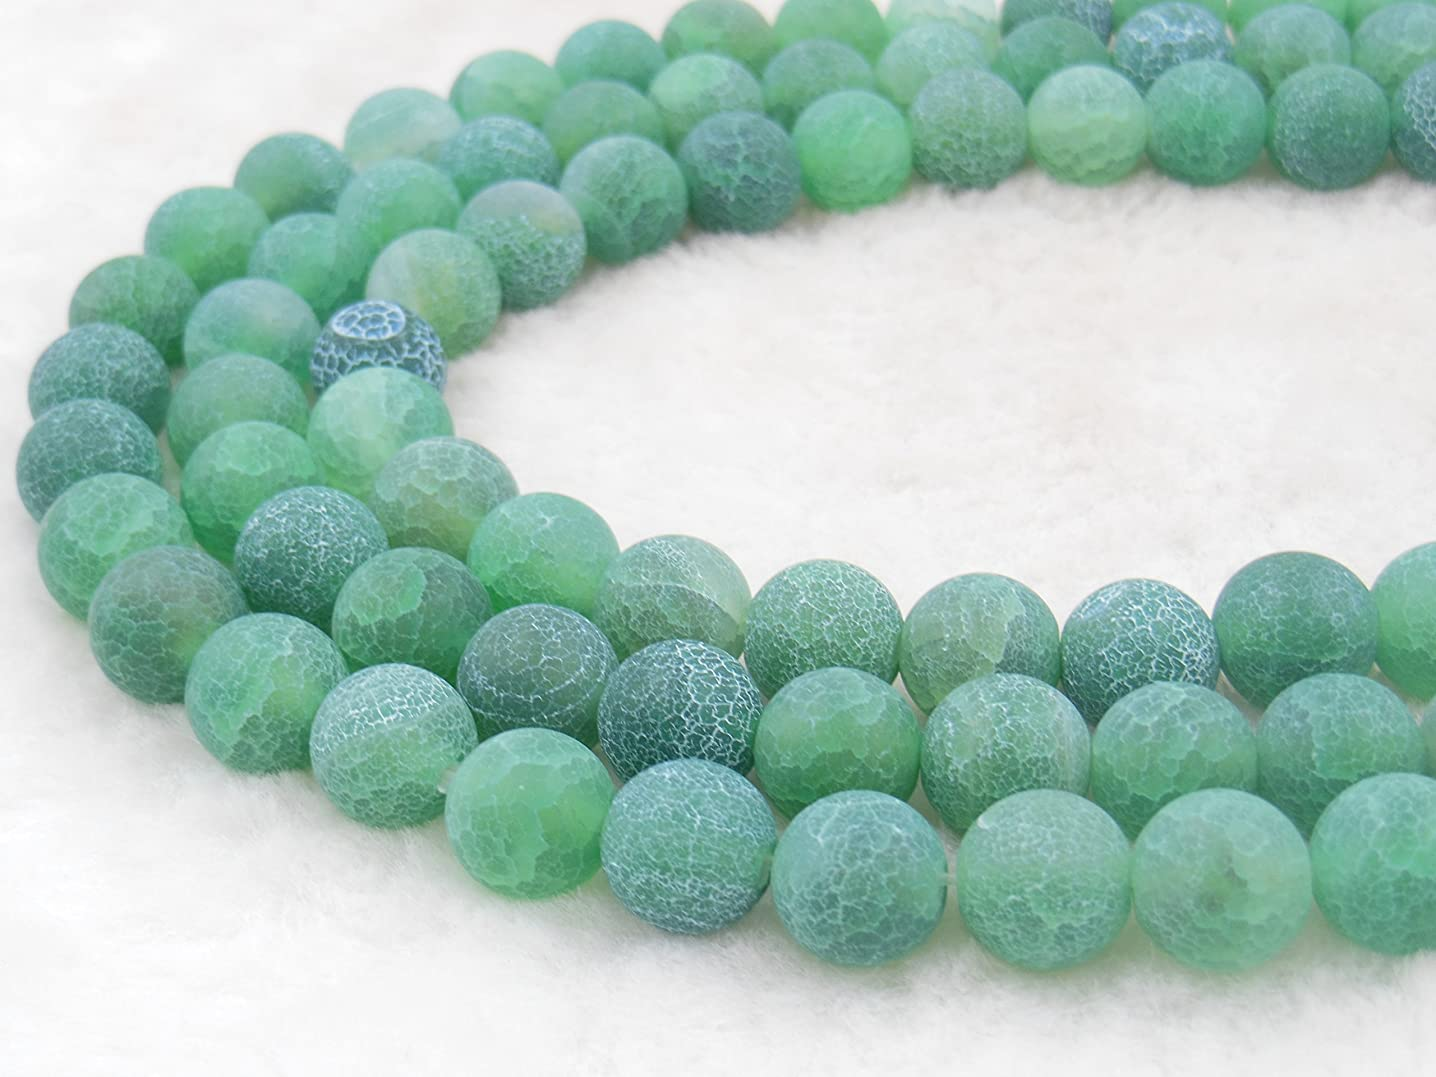 COIRIS 10MM Green Frosted Agate Gem Round Loose Stone Beads for Jewelry Making&DIY&Design (10MM, RS-1100)